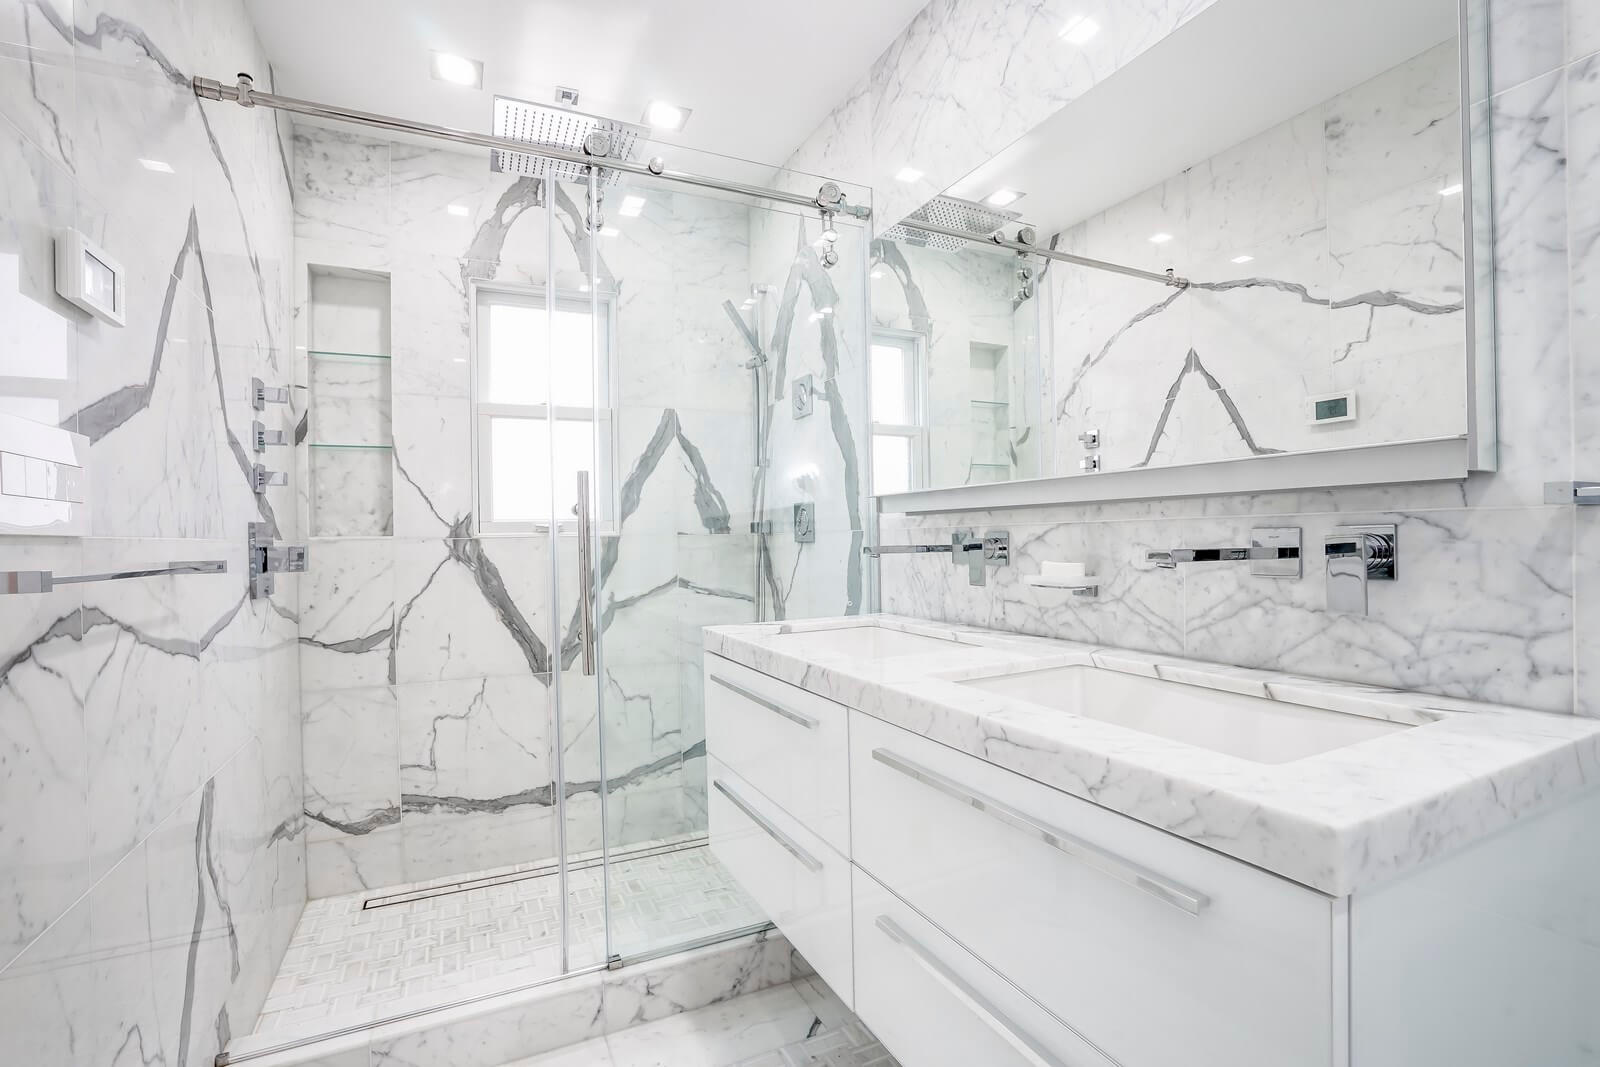 The entire space of this bathroom is filled with light and sparkle thanks to original interior design techniques. The bathroom does have a lot of sparkling surfaces. Besides, our interior designers have placed some large mirrors here. The elegant windows also add some light to the interior. In the evening and at night, the room is filled with artificial light emitted by several large, beautiful pendant lamps. Don't miss the chance to elevate your bathroom interior design by contacting our best interior designers as soon as possible!